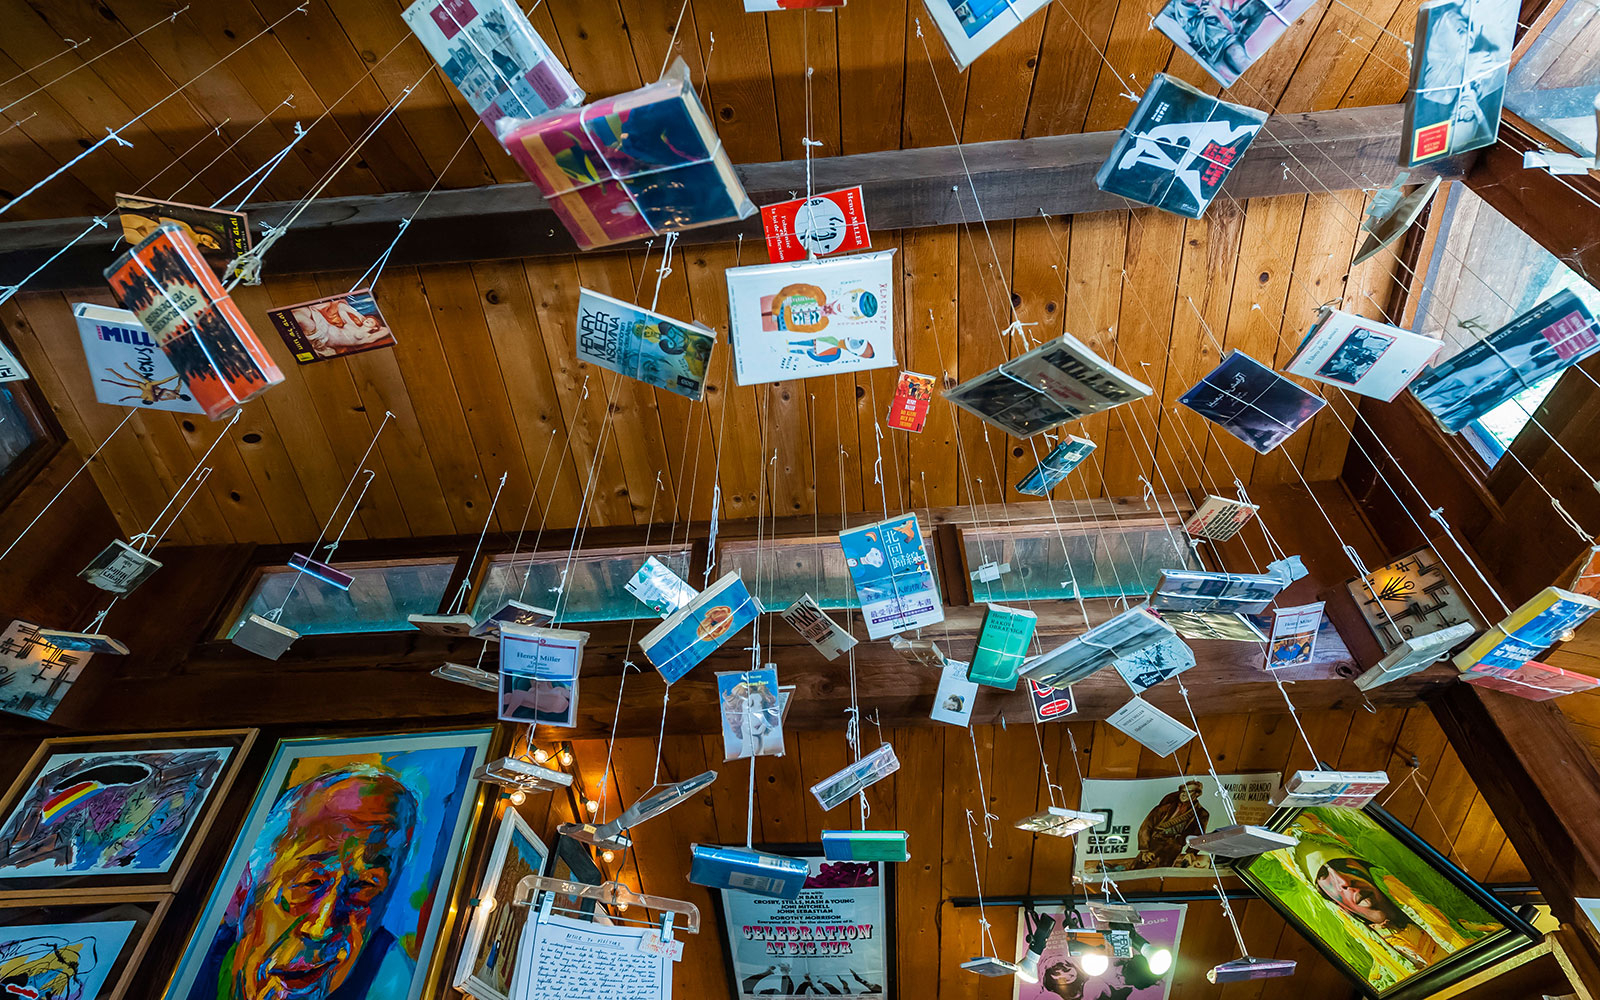 1:30 p.m.: Visit the Henry Miller Memorial Library in Big Sur